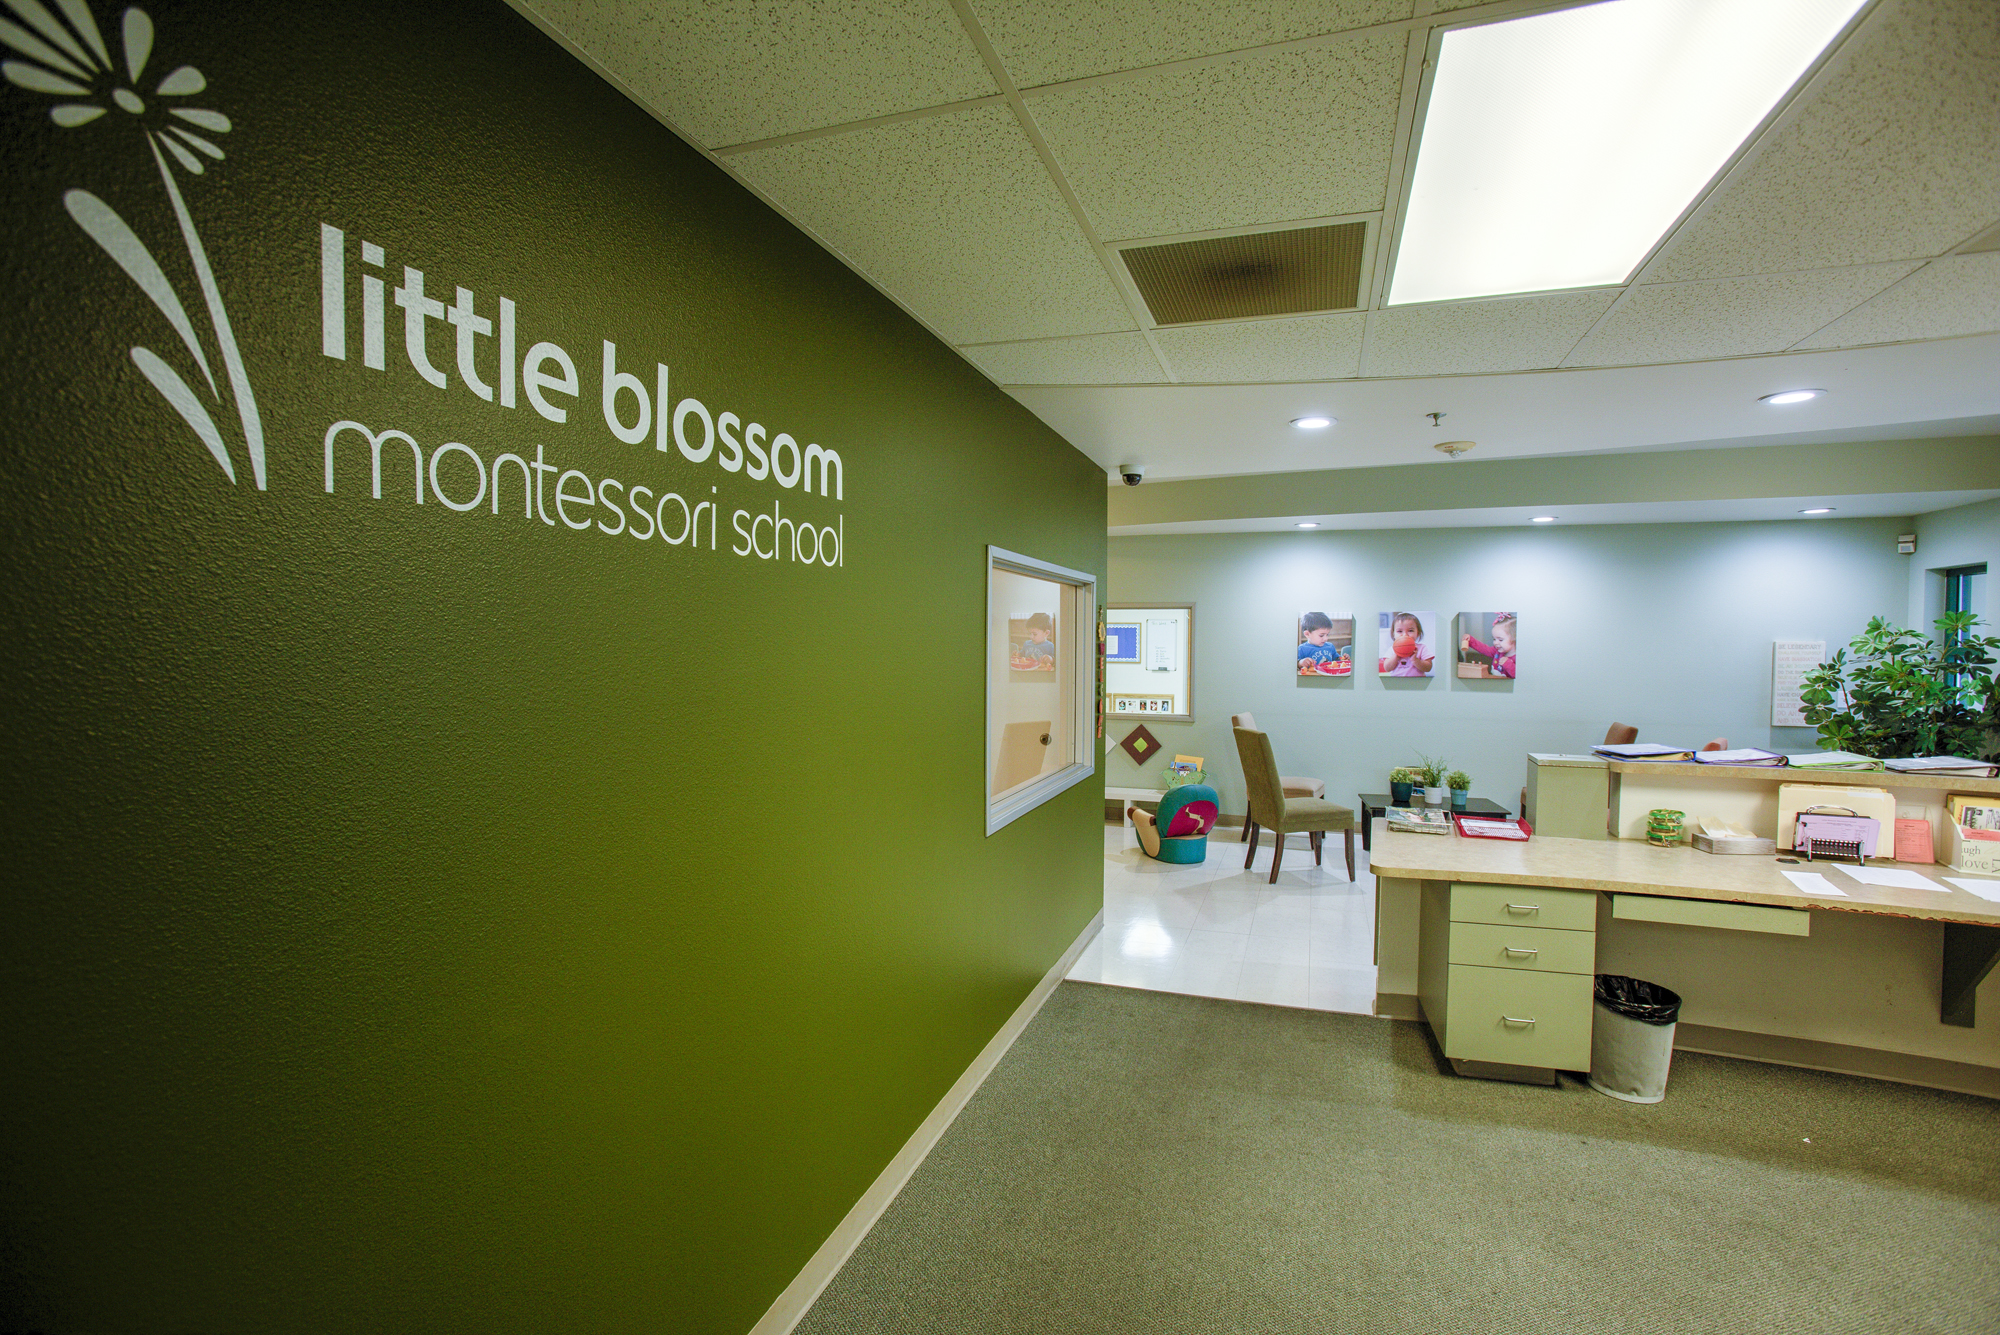 Little-Blossom-Montessori-Preschool-and-Daycare-Services-Sacramento-Natomas_24.jpg